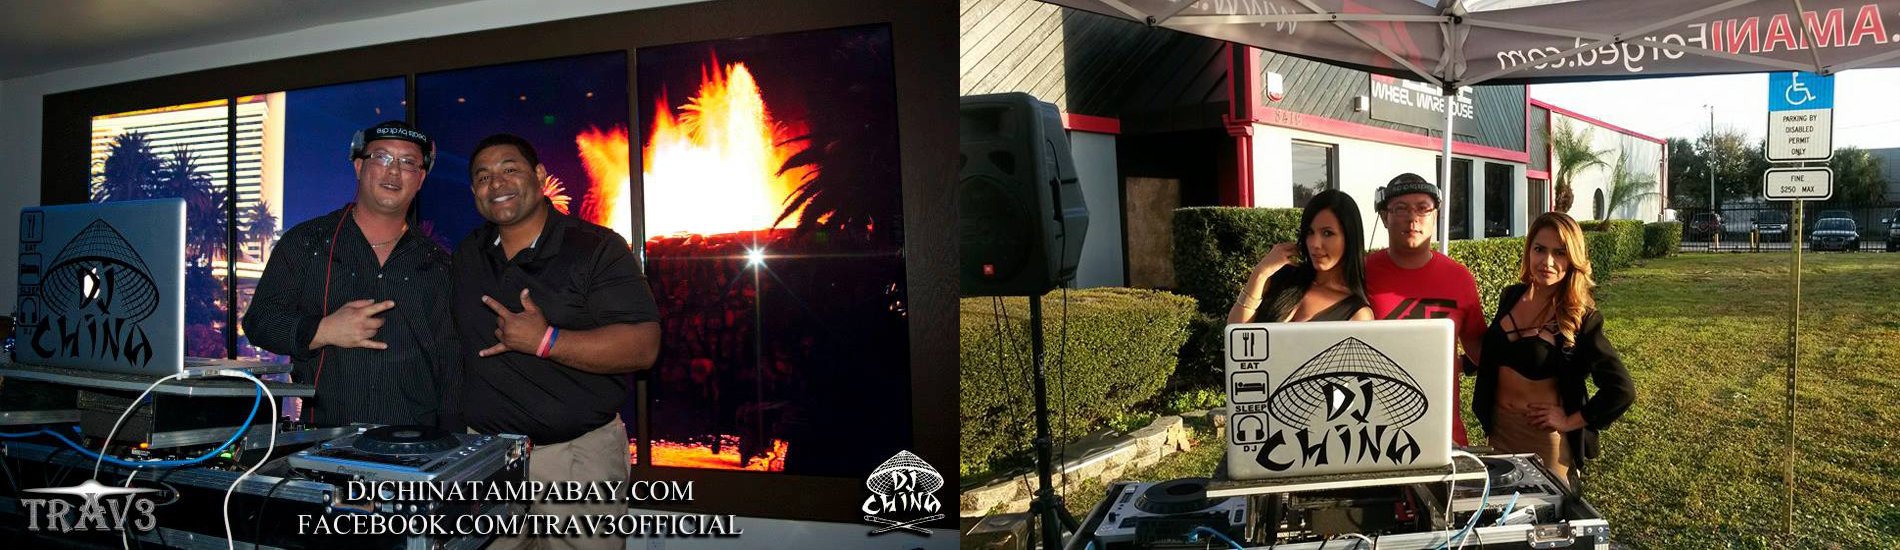 Outdoor DJ Entertainment